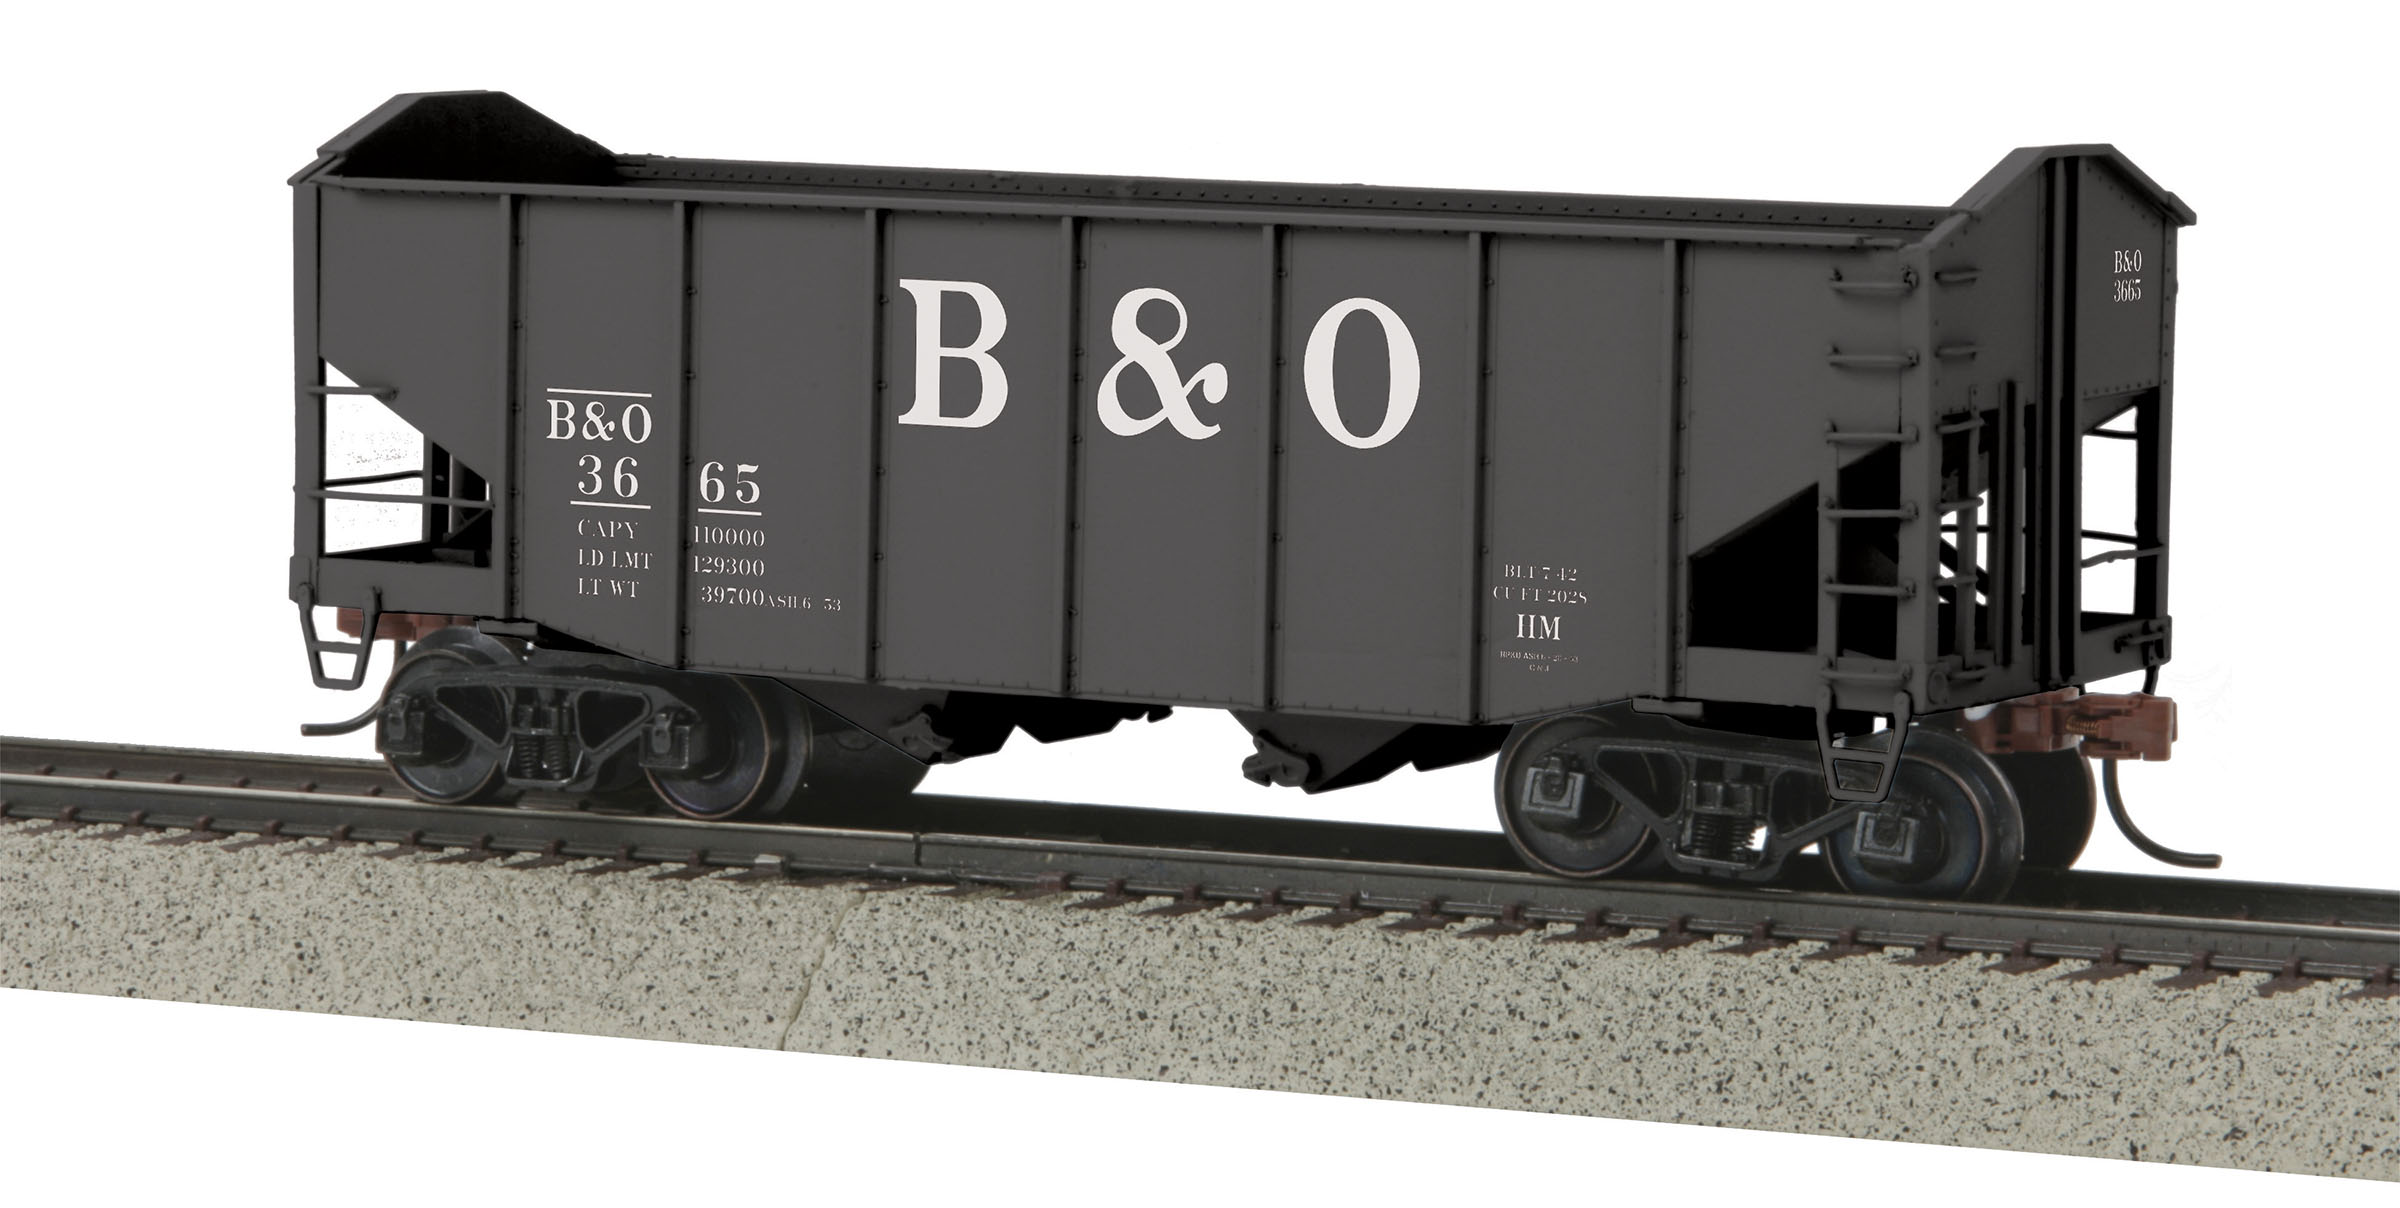 MTH 3575066 2Bay Fish Belly Hopper Car Hi-Rail Wheel B&O #3665